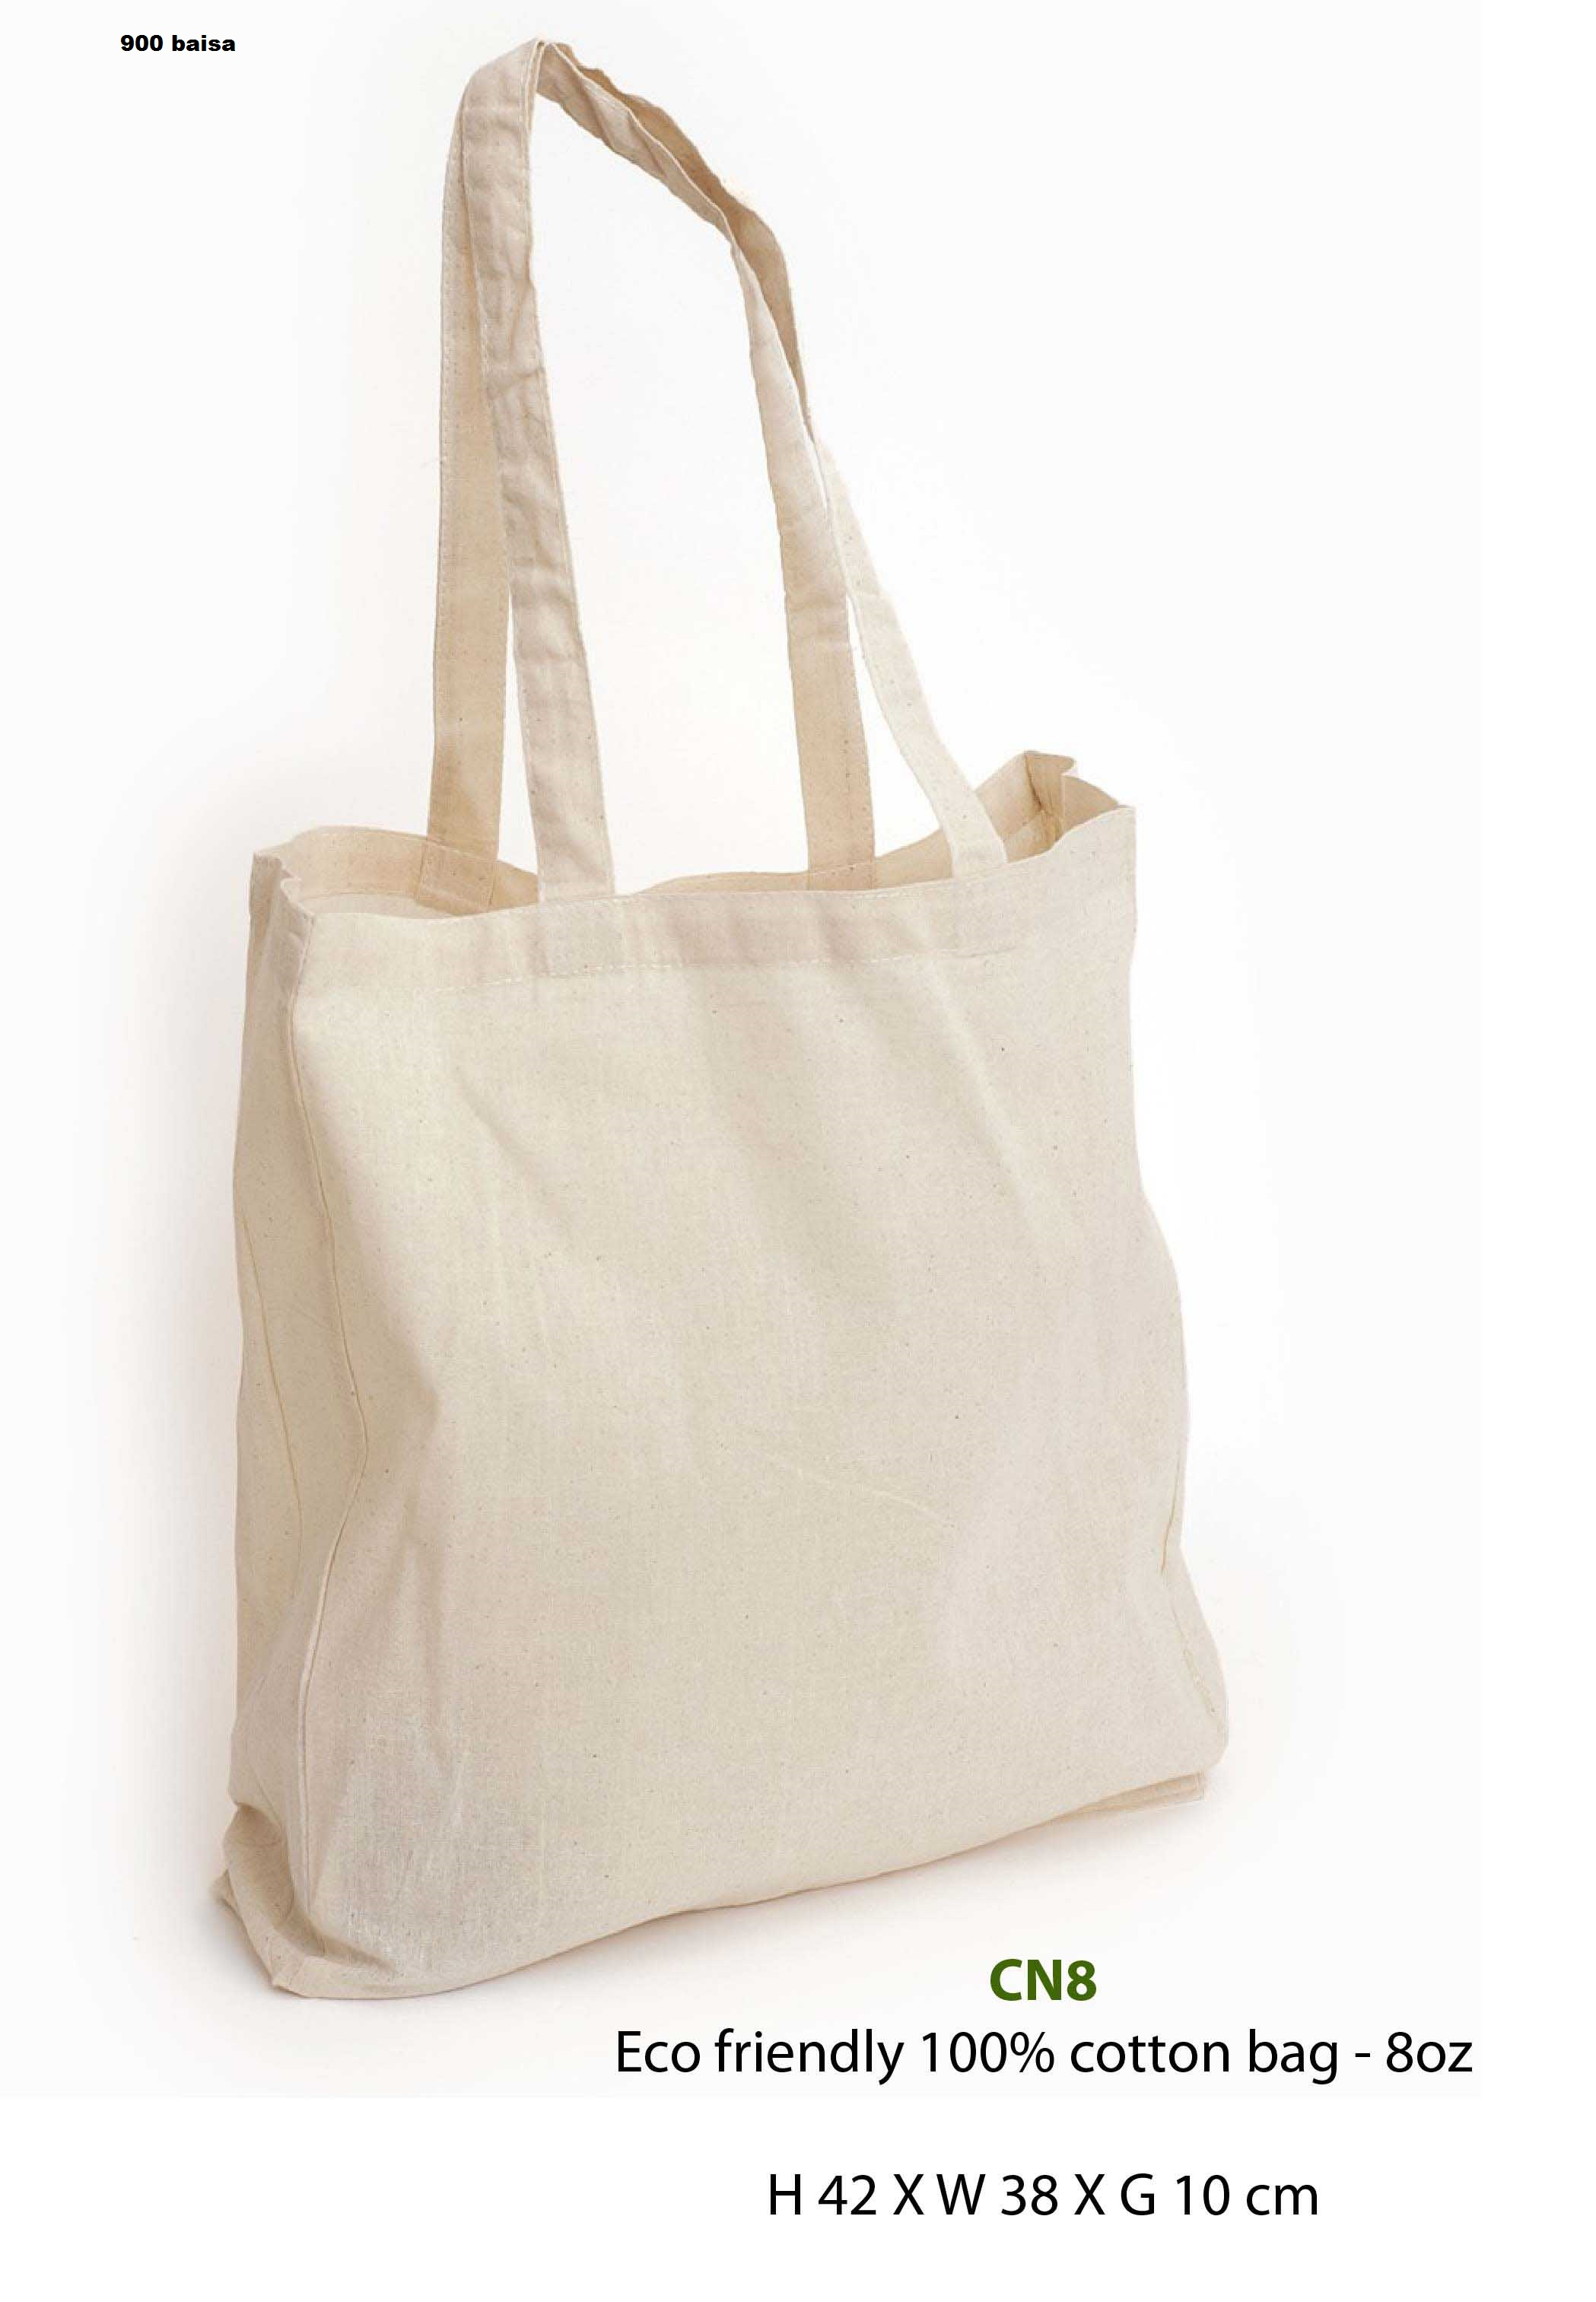 Eco friendly 100% cotton bag